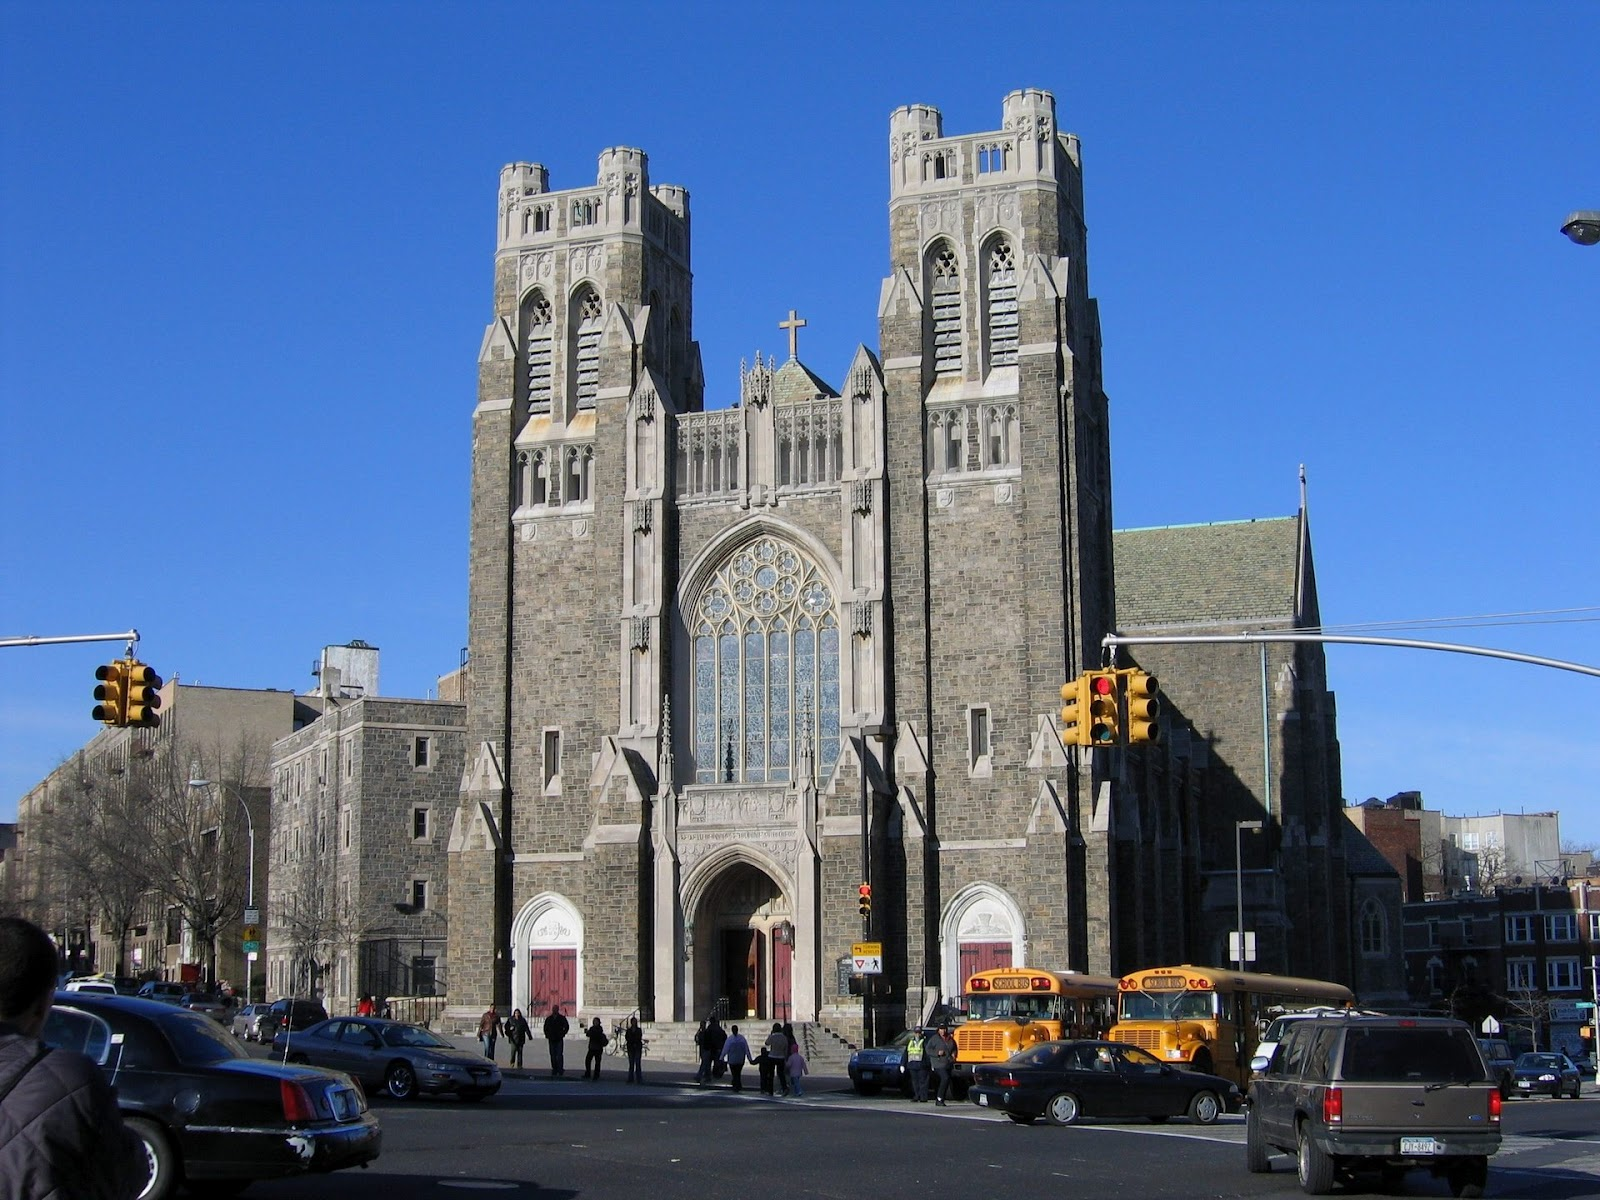 http://3.bp.blogspot.com/-EU9iS6QCDgI/UBZ2TKxVT1I/AAAAAAAAFUo/CJwaWw-D_Y4/s1600/church_of_saint_nicholas__bronx__new_york_city__united_states.jpg